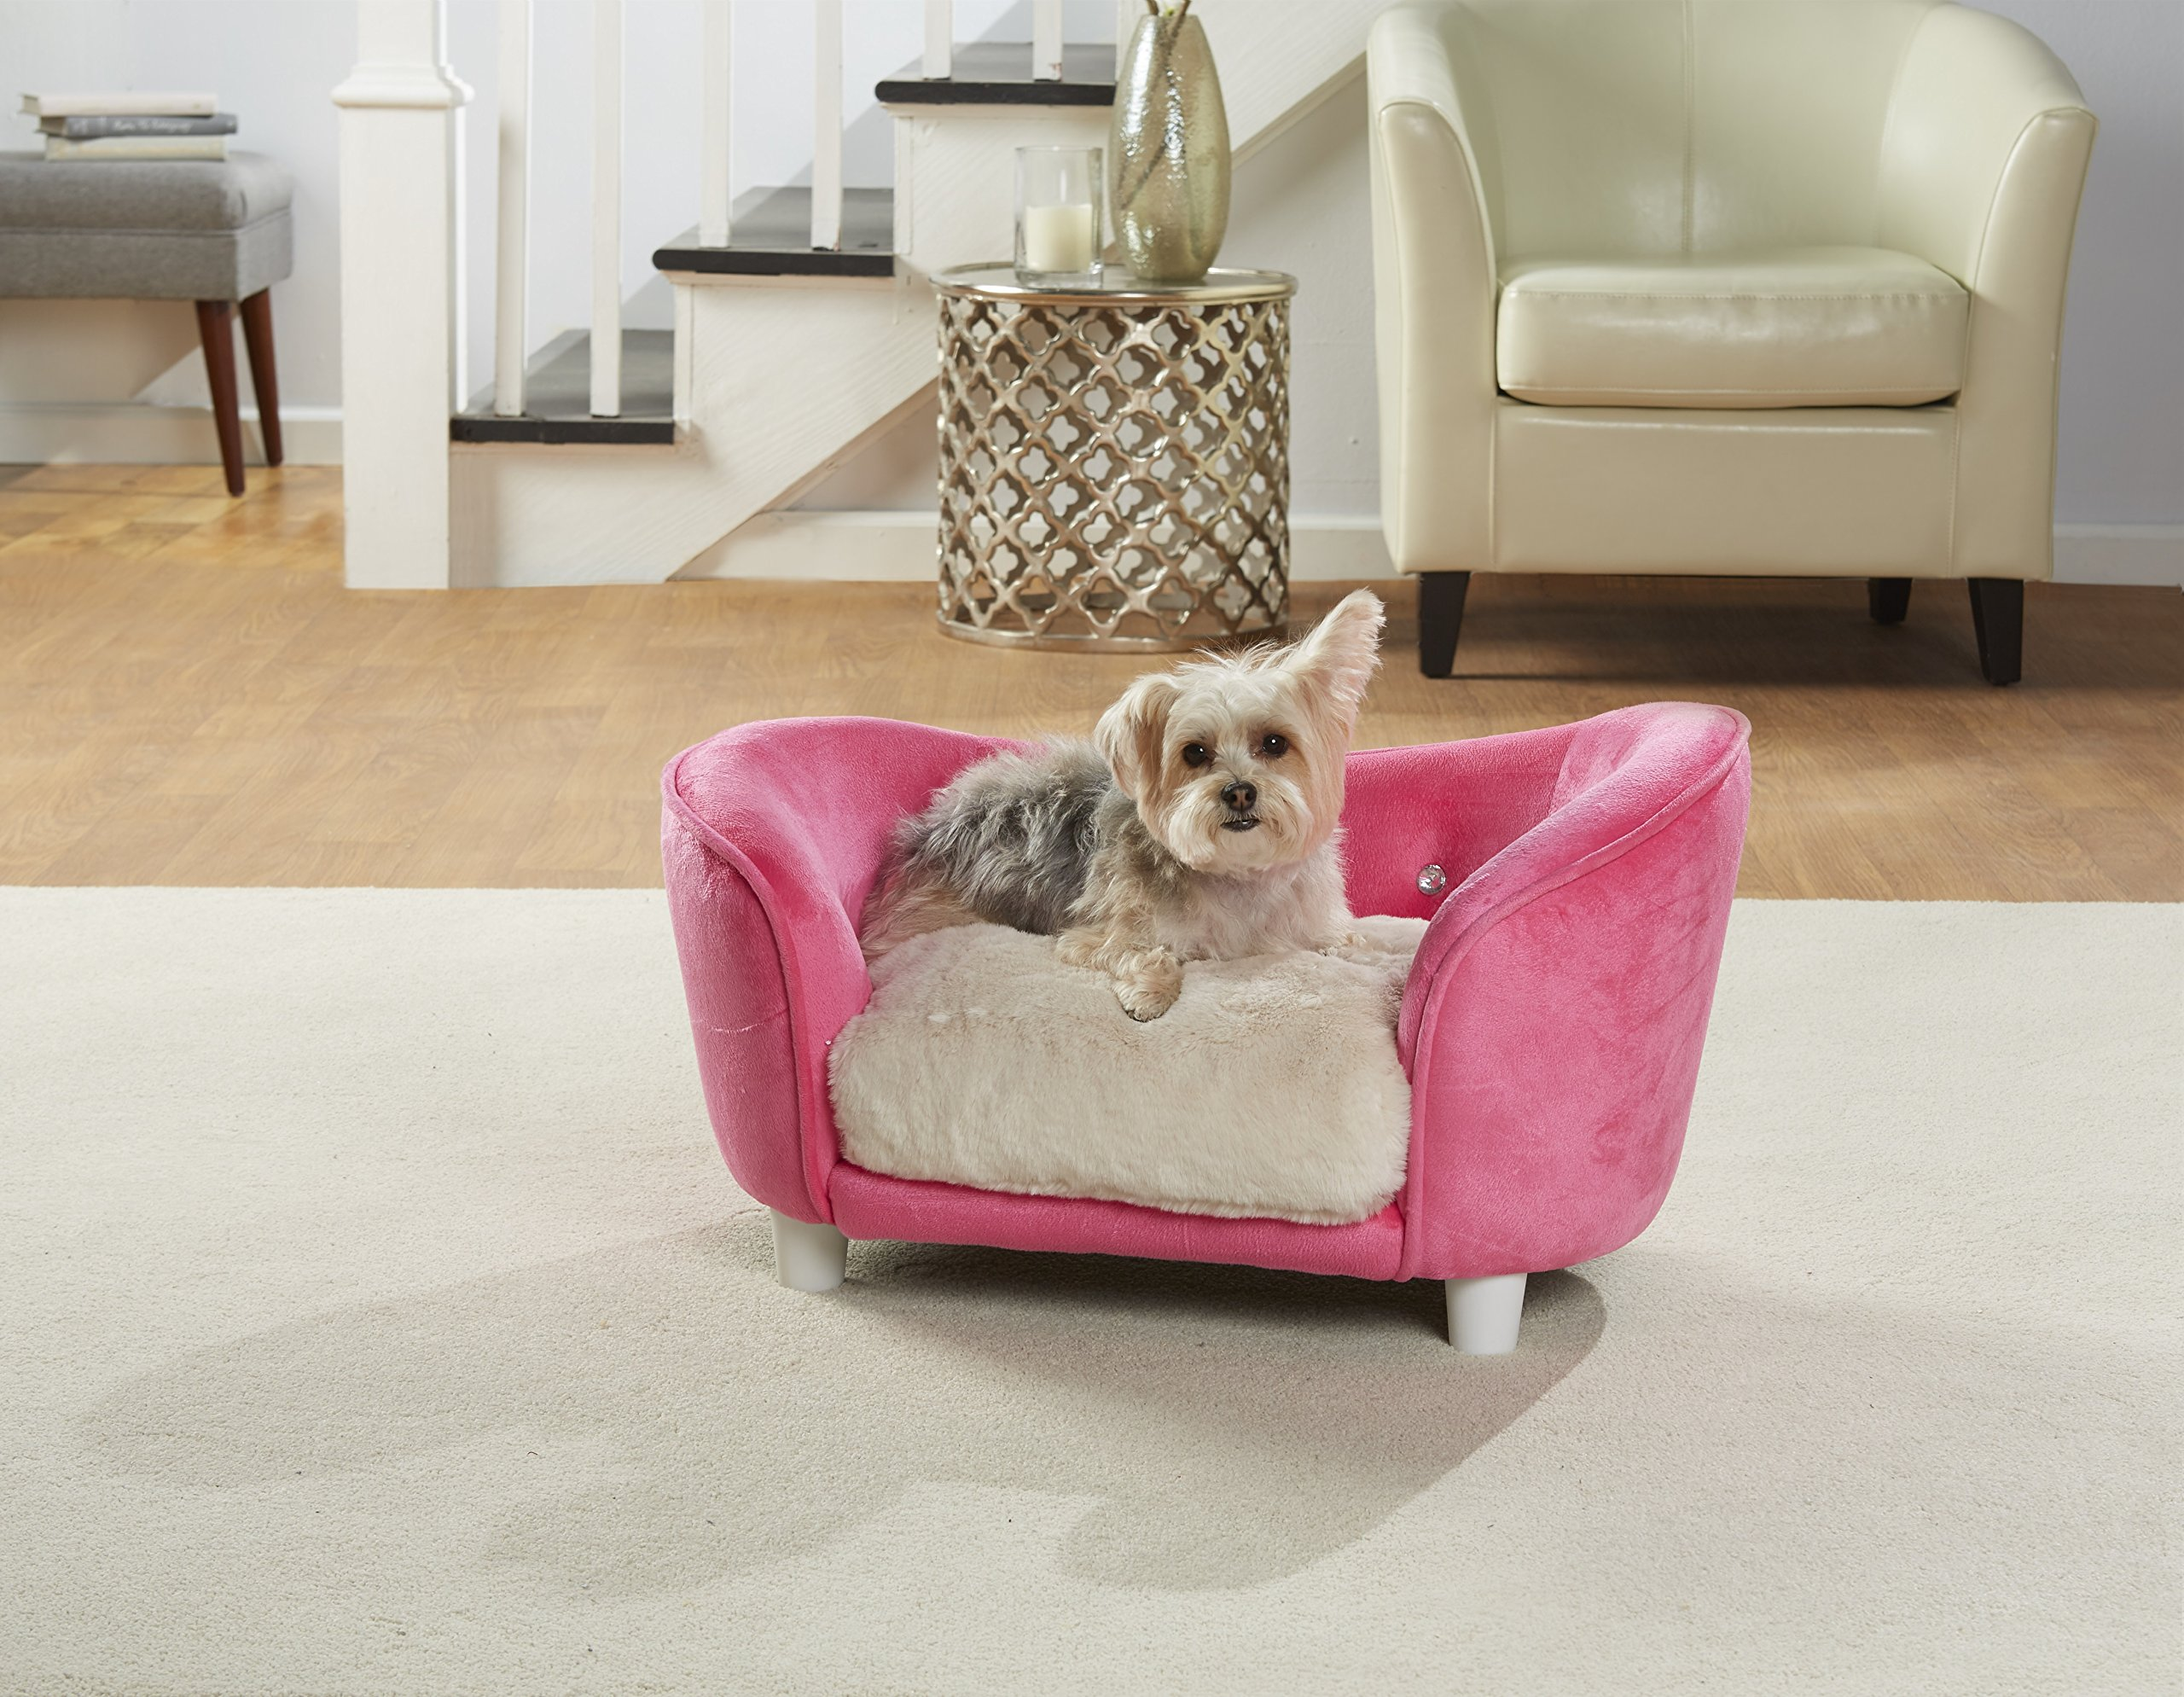 Enchanted Home Pet Ultra Plush Snuggle Pet Bed In Pink with Faux Fur Cushion